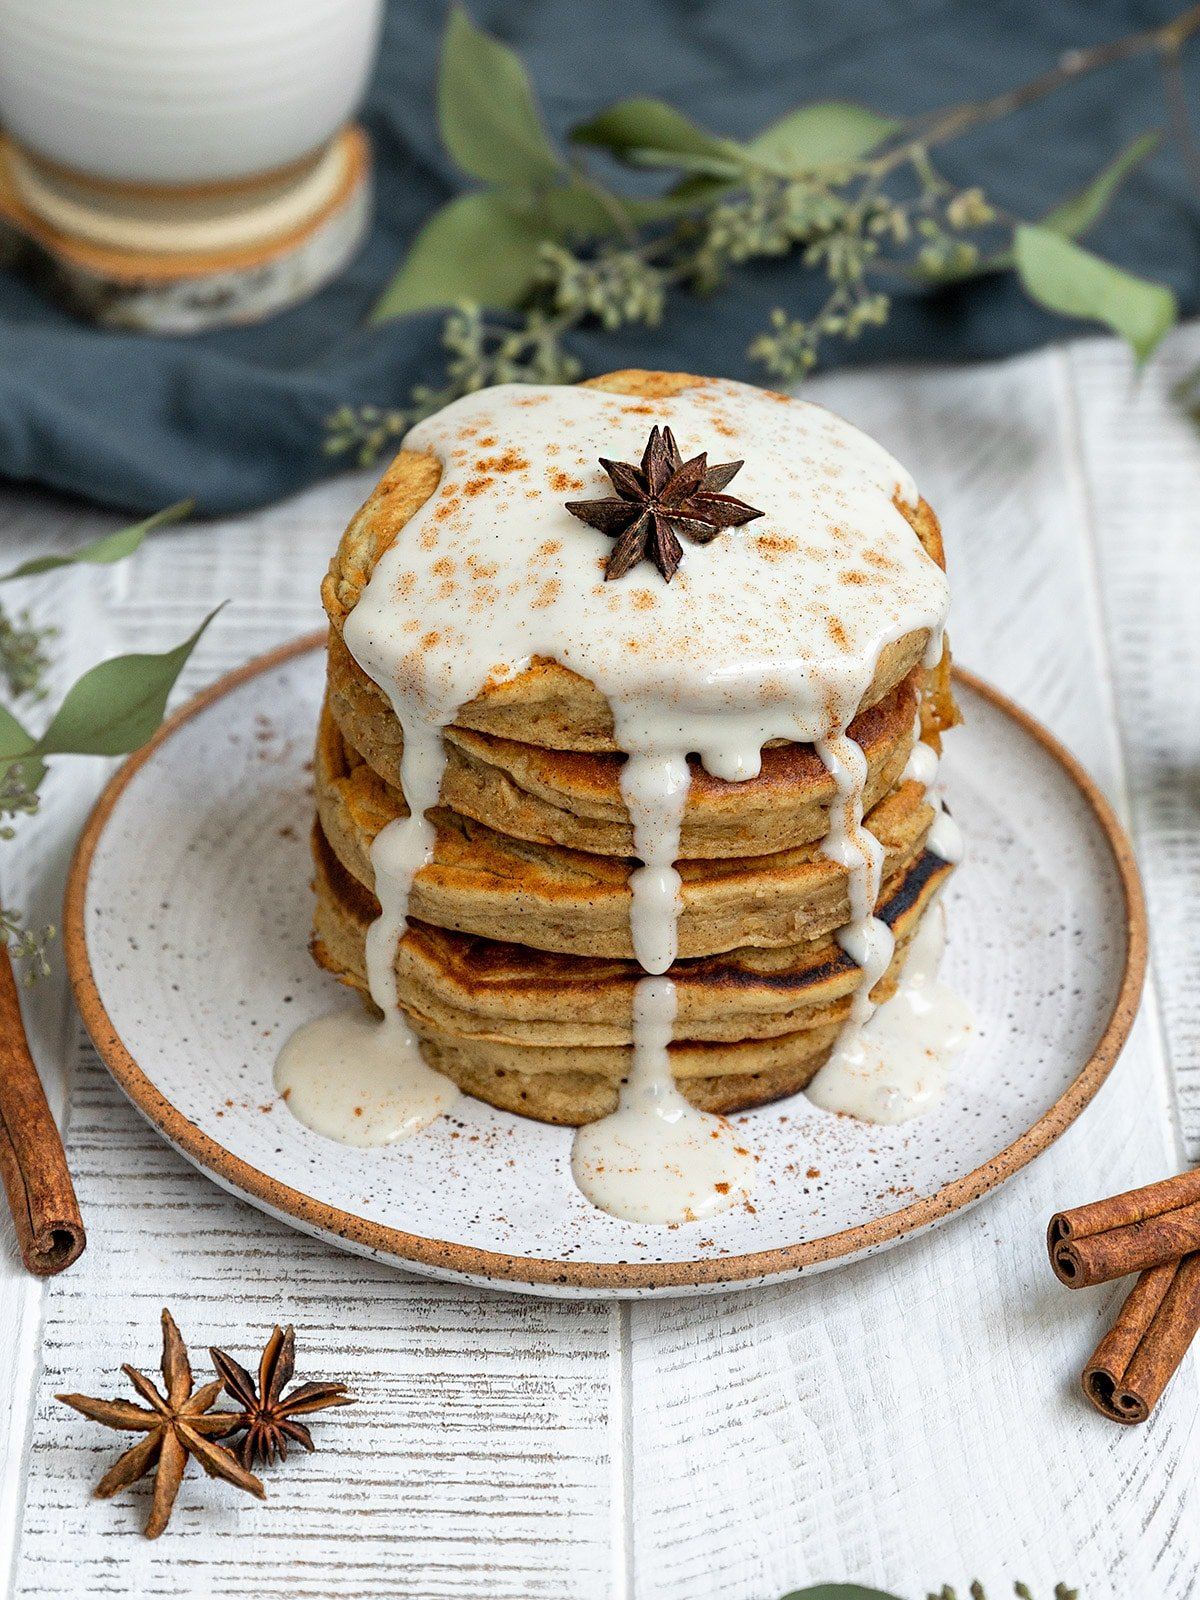 a stack of 5 pancakes on a plate topped with yogurt and whole star anise